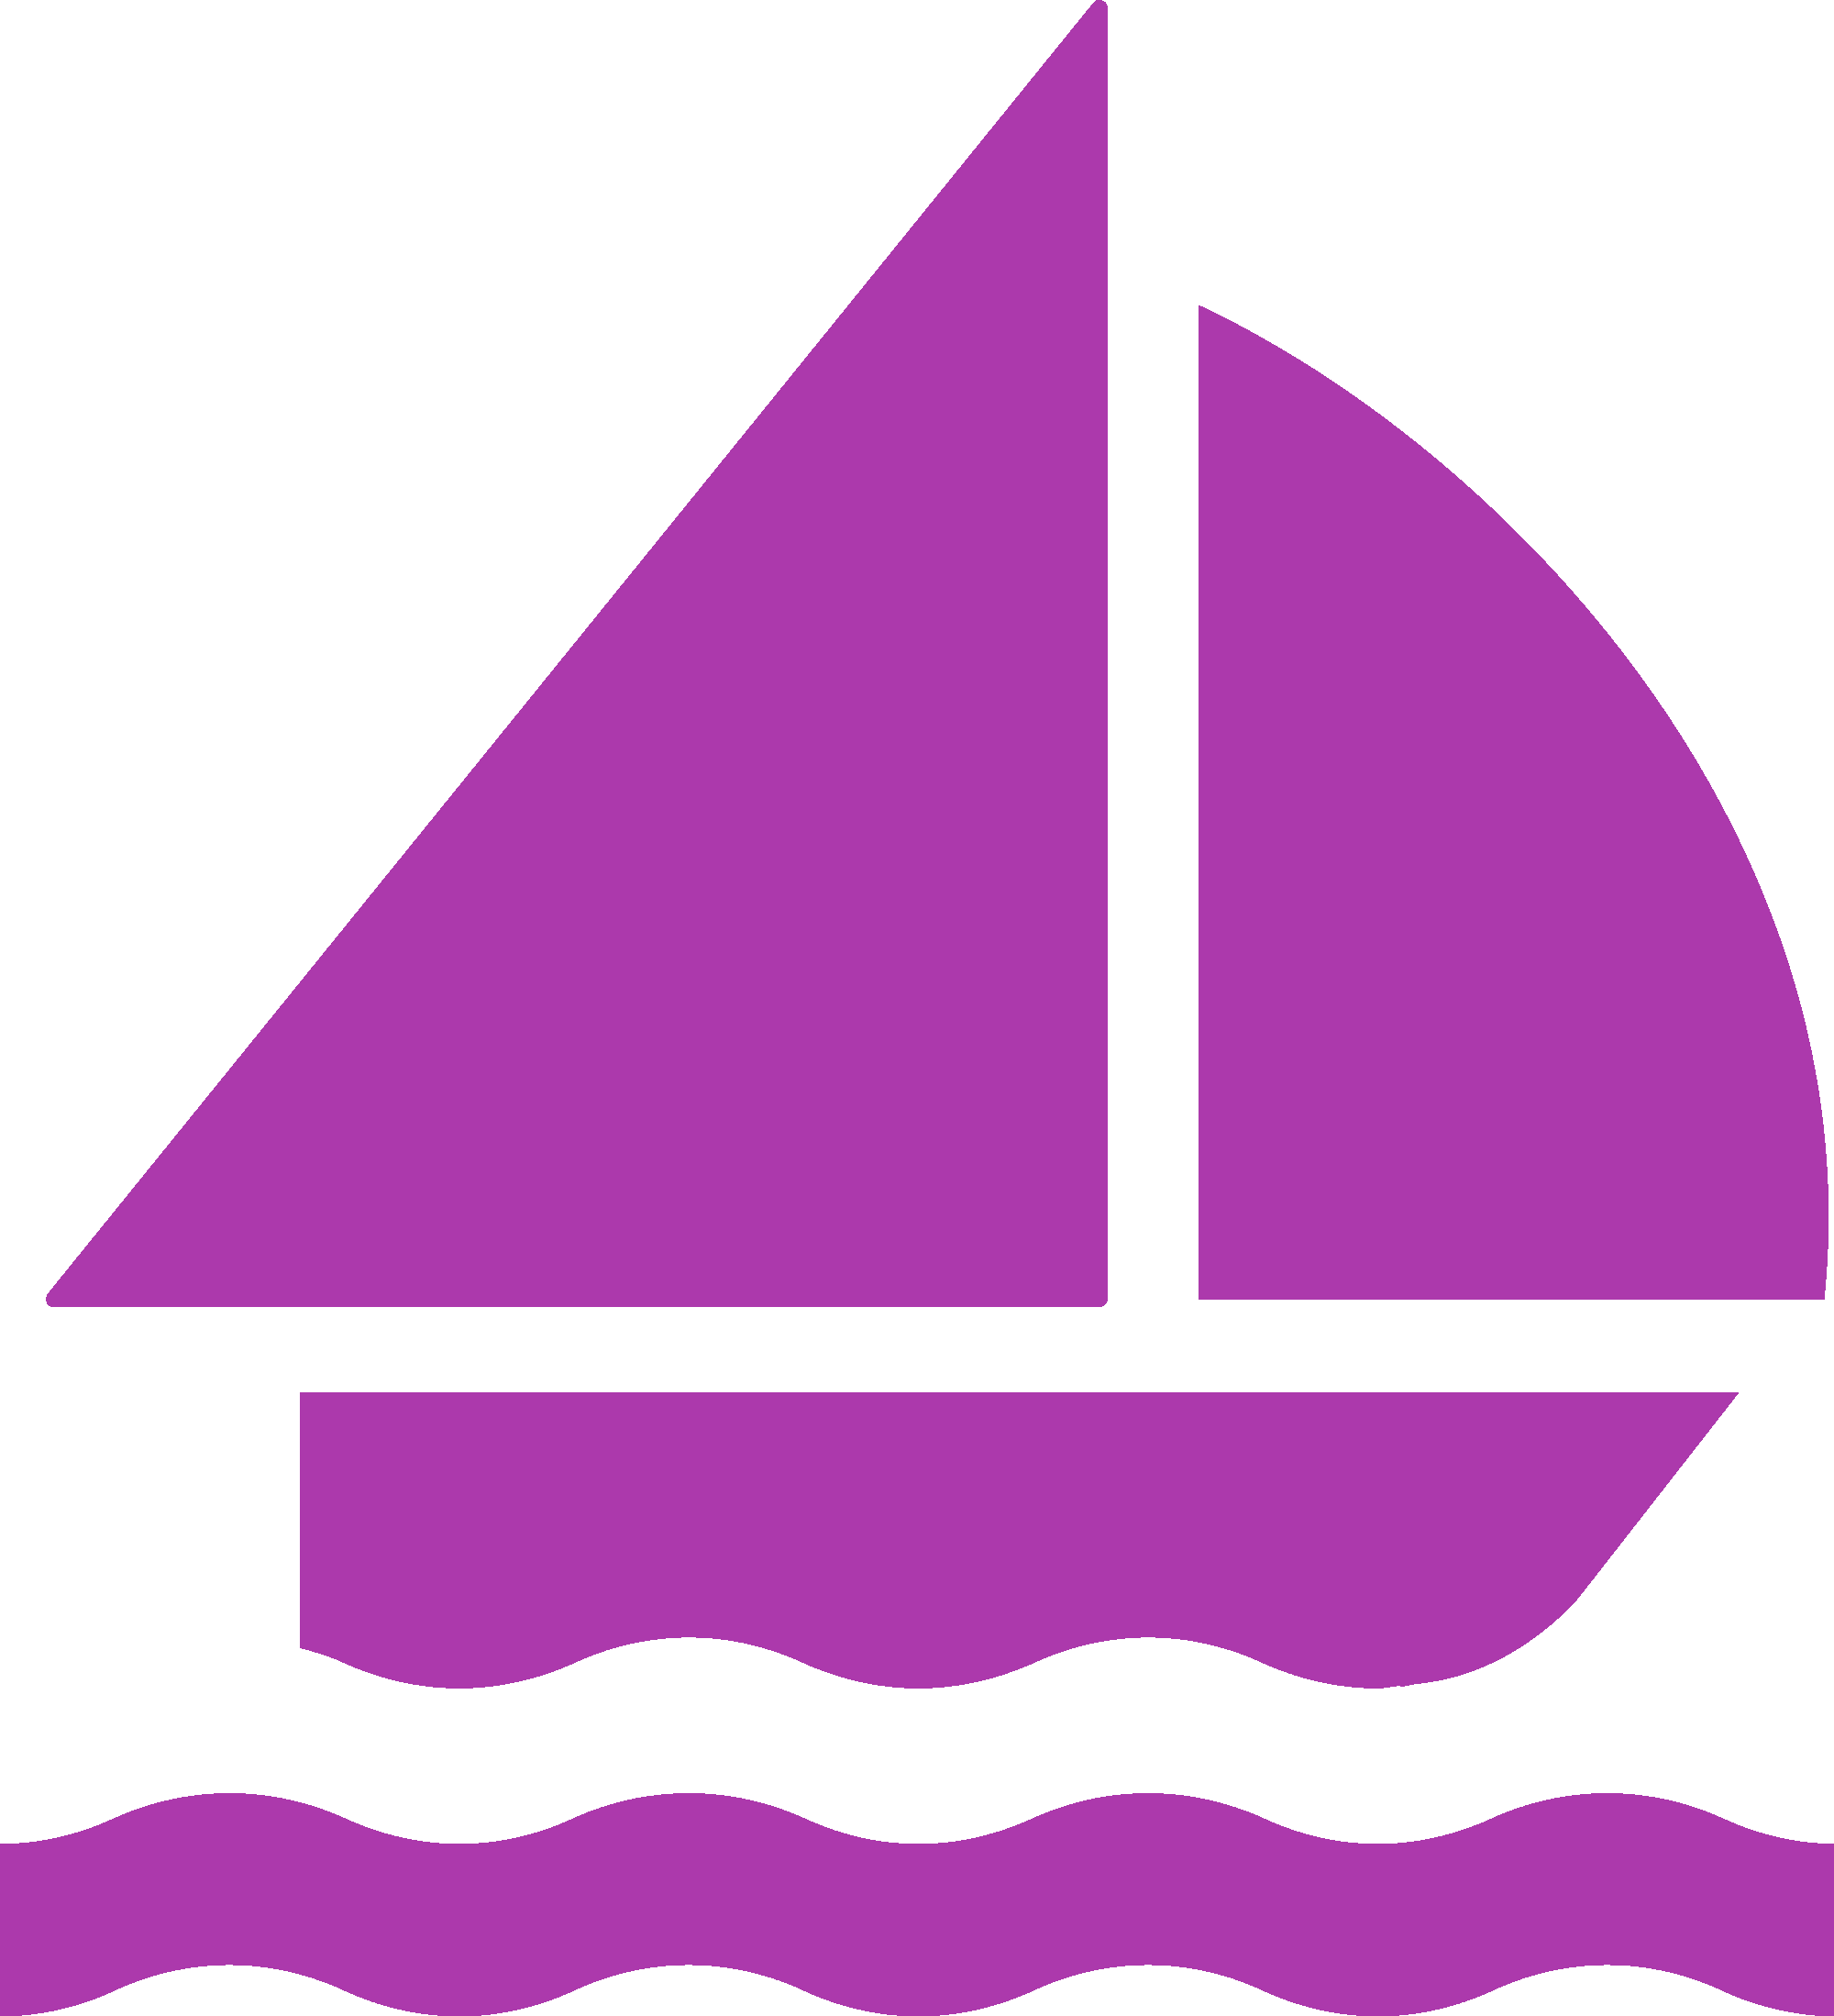 File:Boat icon.png - Wikimedia Commons